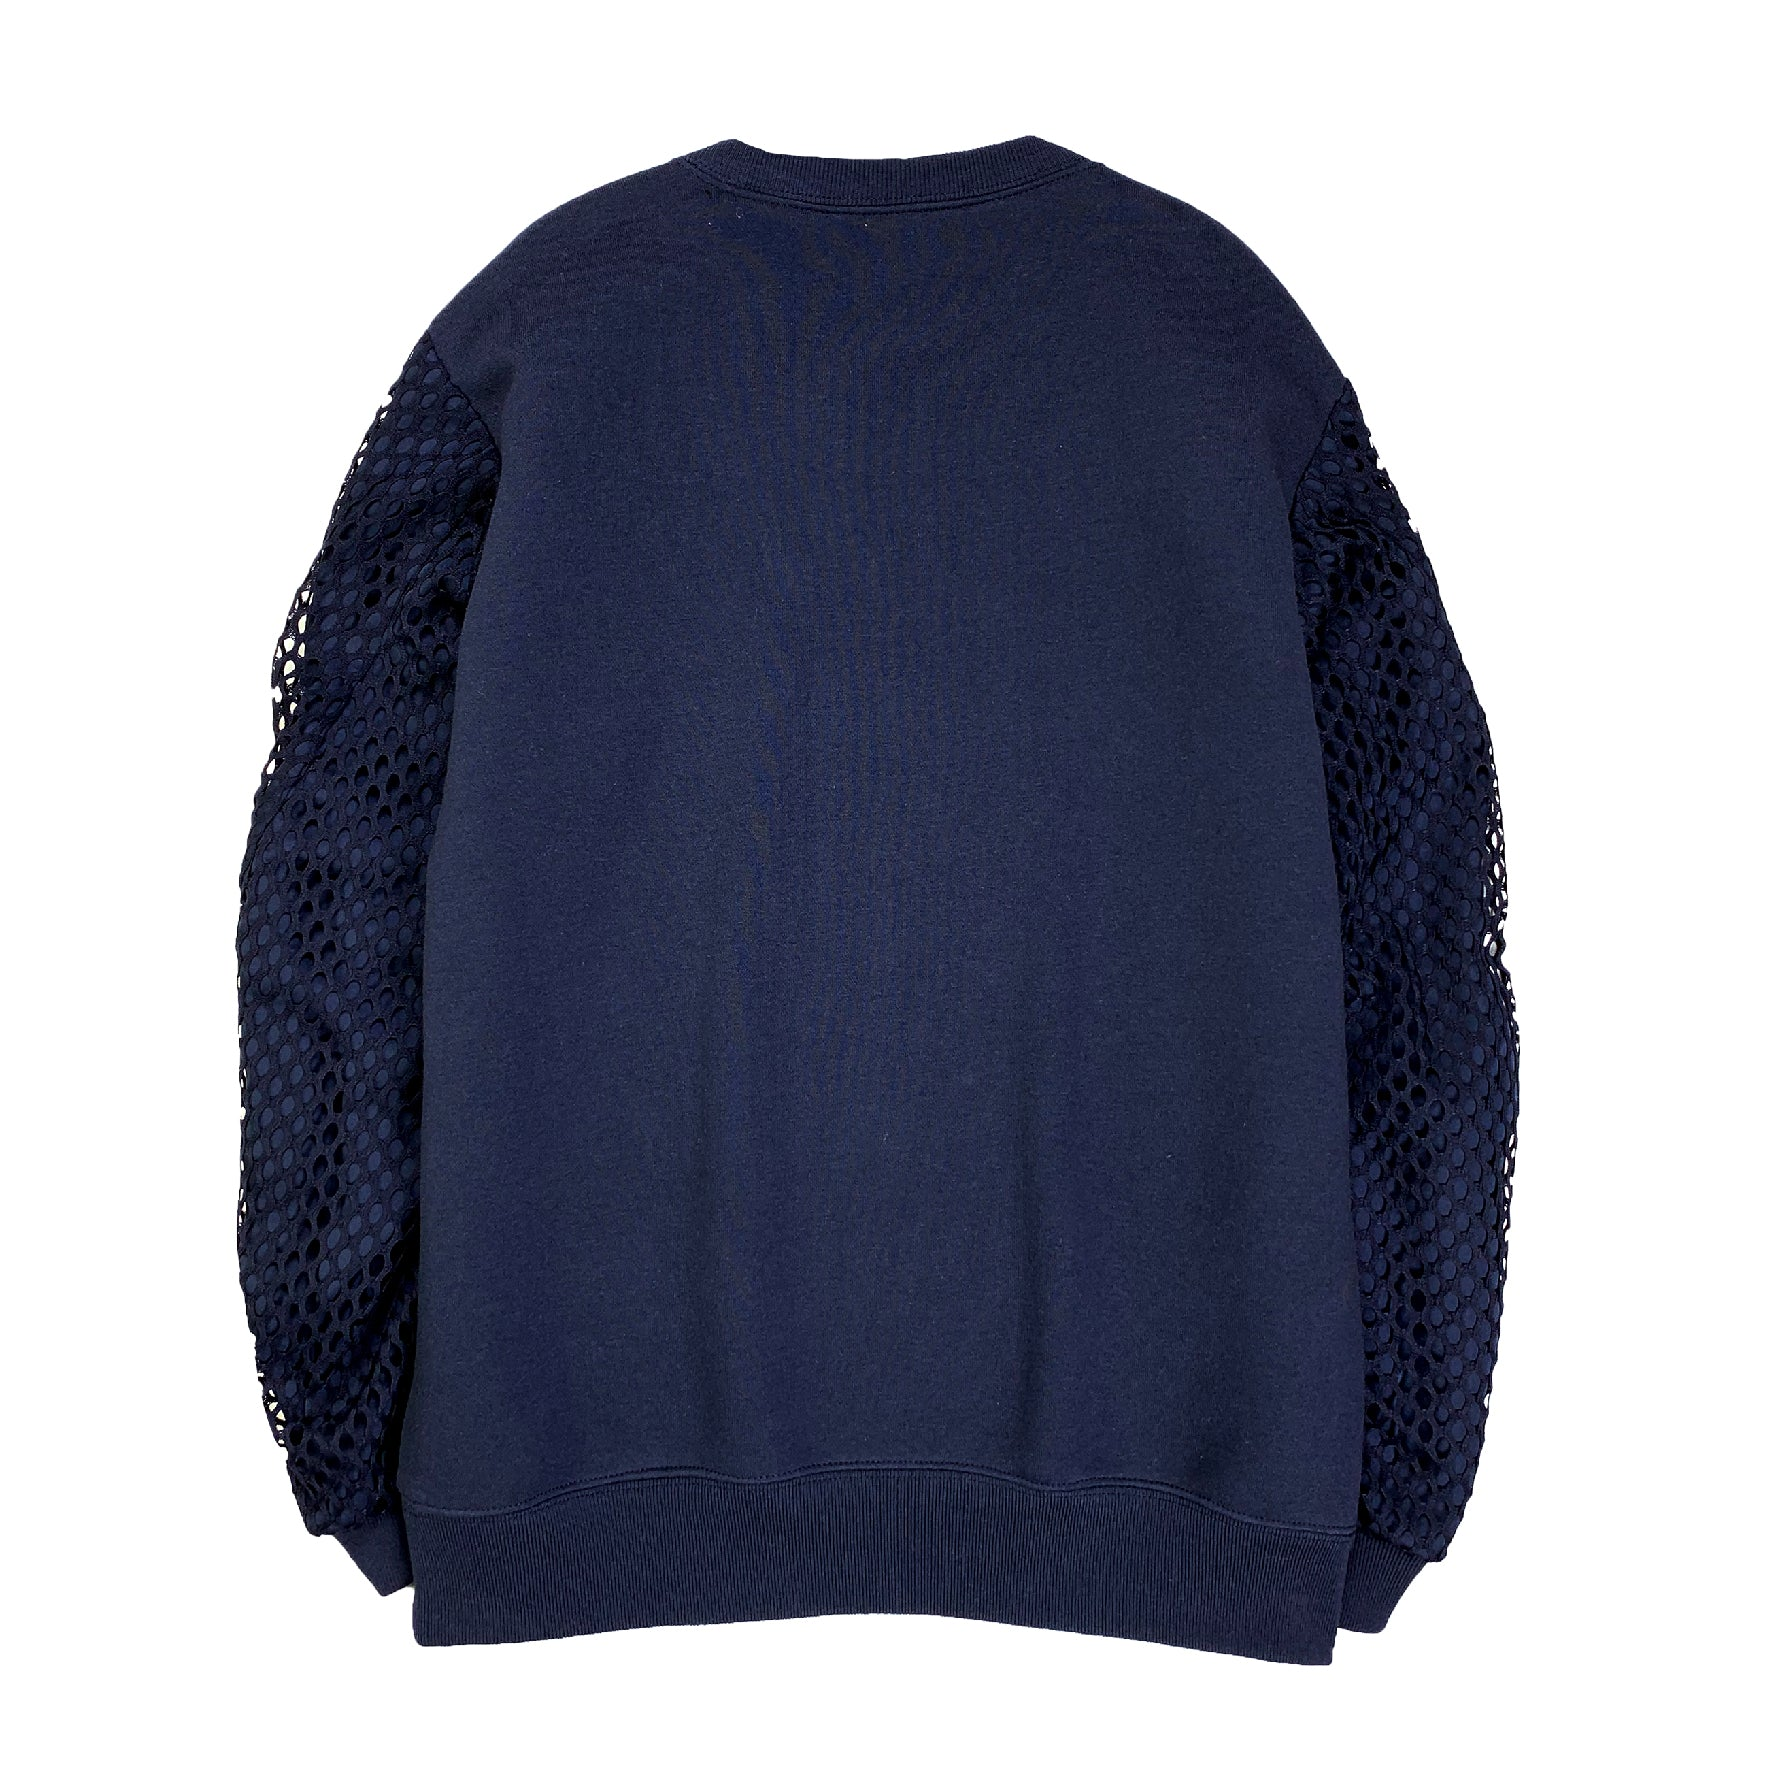 Mesh Satin Puff Sleeve Sweatshirt NAVY